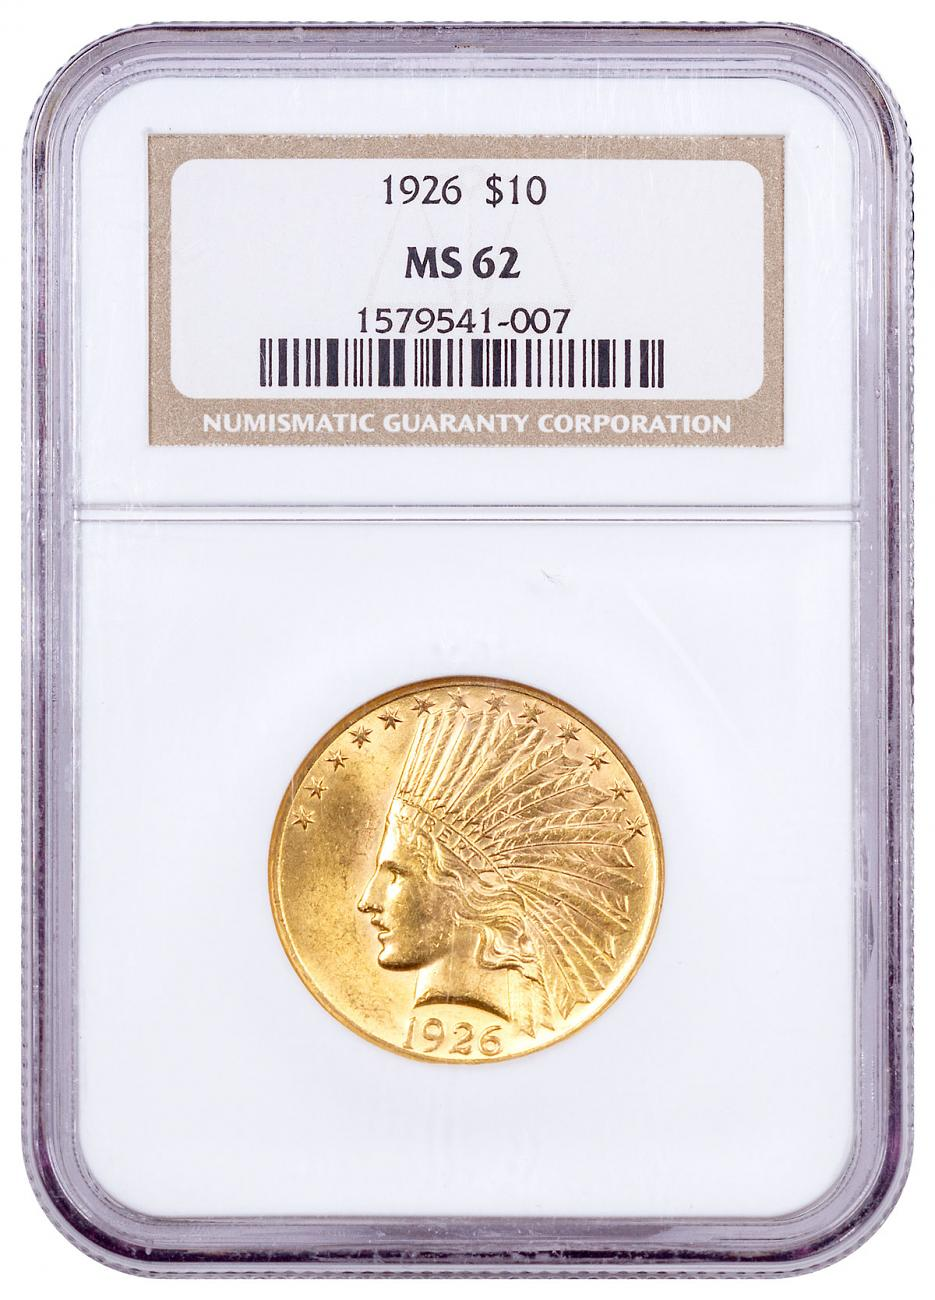 1926 Indian Head With Motto $10 Gold Eagle NGC MS62